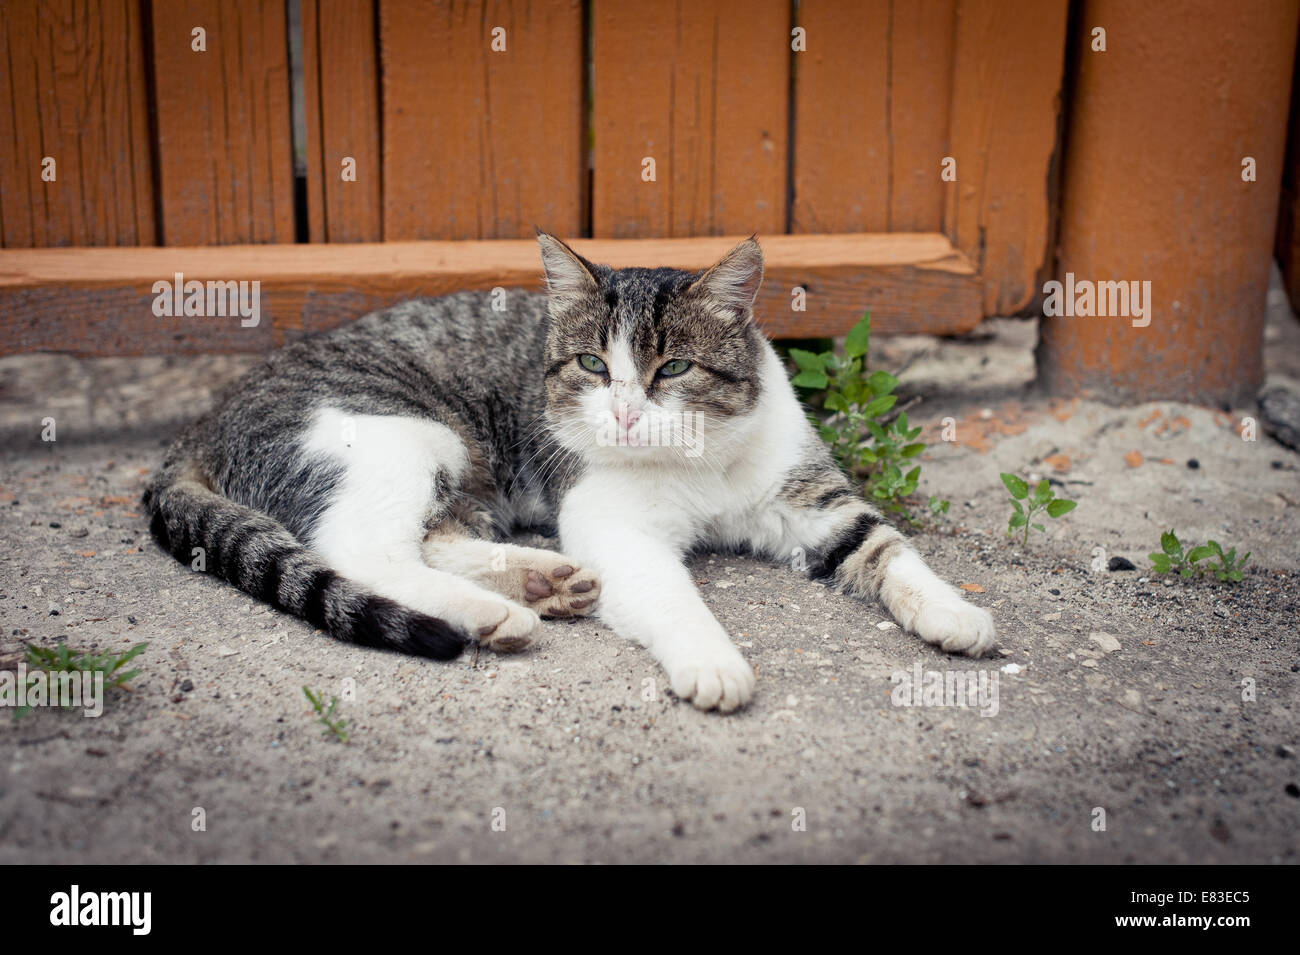 Cat at a fence. The gray-white cat basked in the sun. - Stock Image